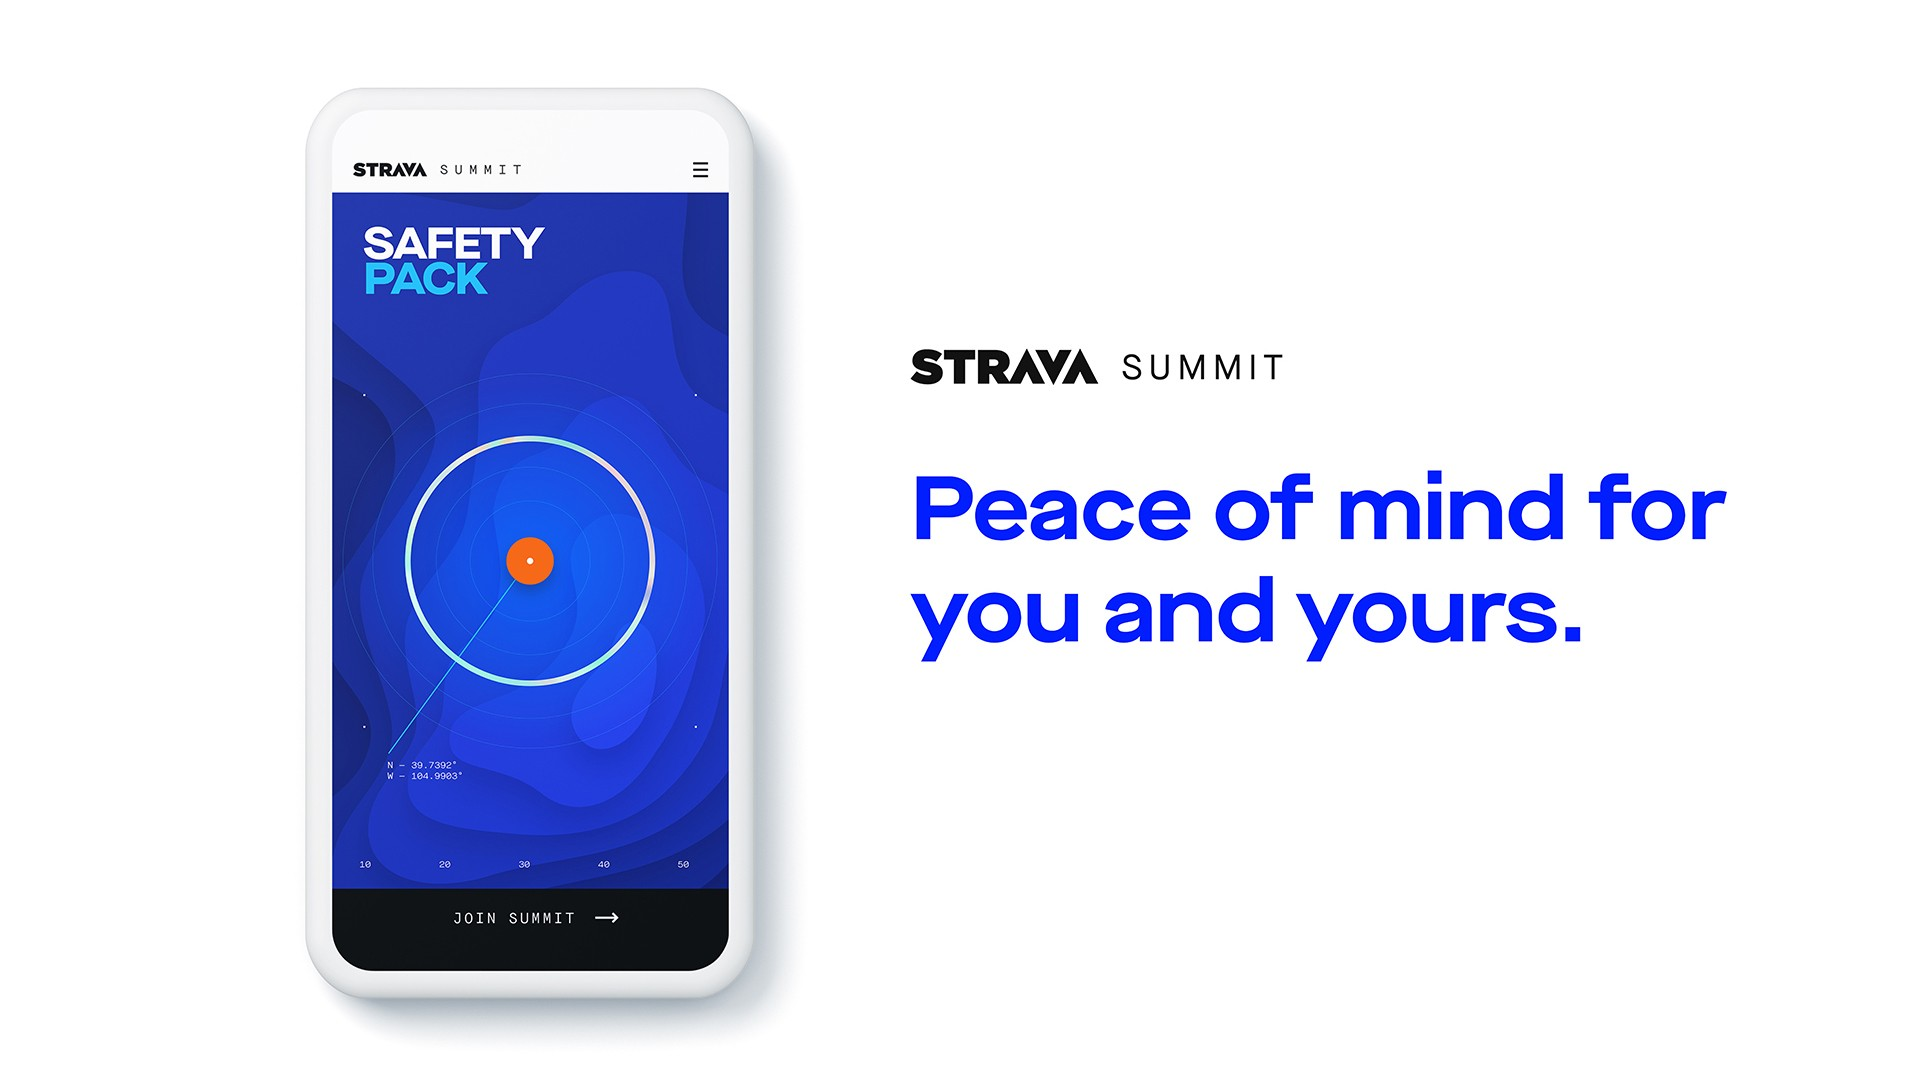 The Strava Safety Pack opens up mapping features and Strava Beacon